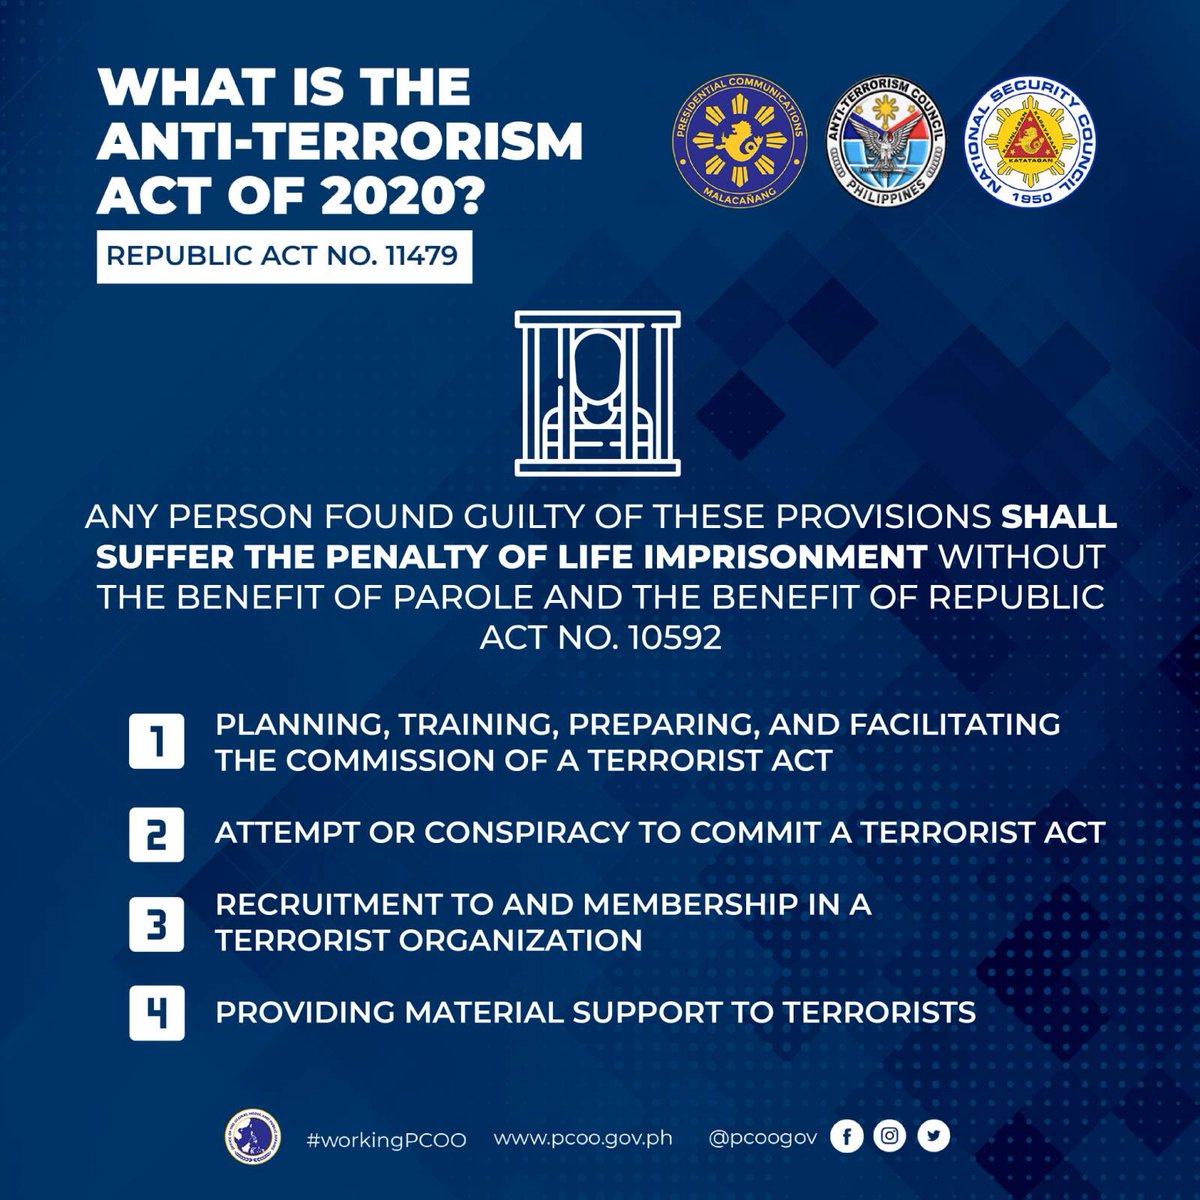 The said law was not crafted to curtail advocacy, dissent, and other forms of expression, but instead, was created to protect the nation from individuals who commit or intend to commit destructive and inhumane acts of terrorism. https://t.co/IegEnmj0od